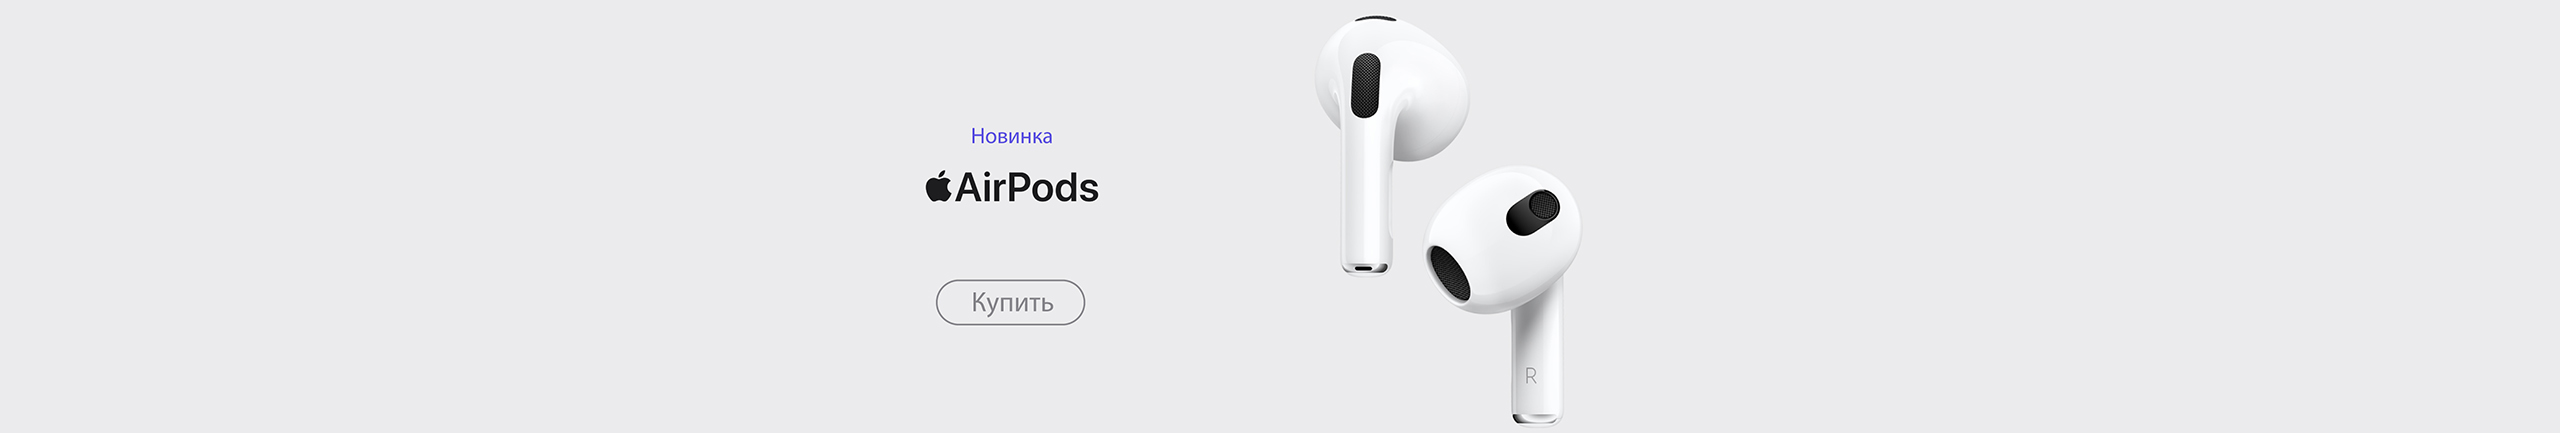 GR Airpods